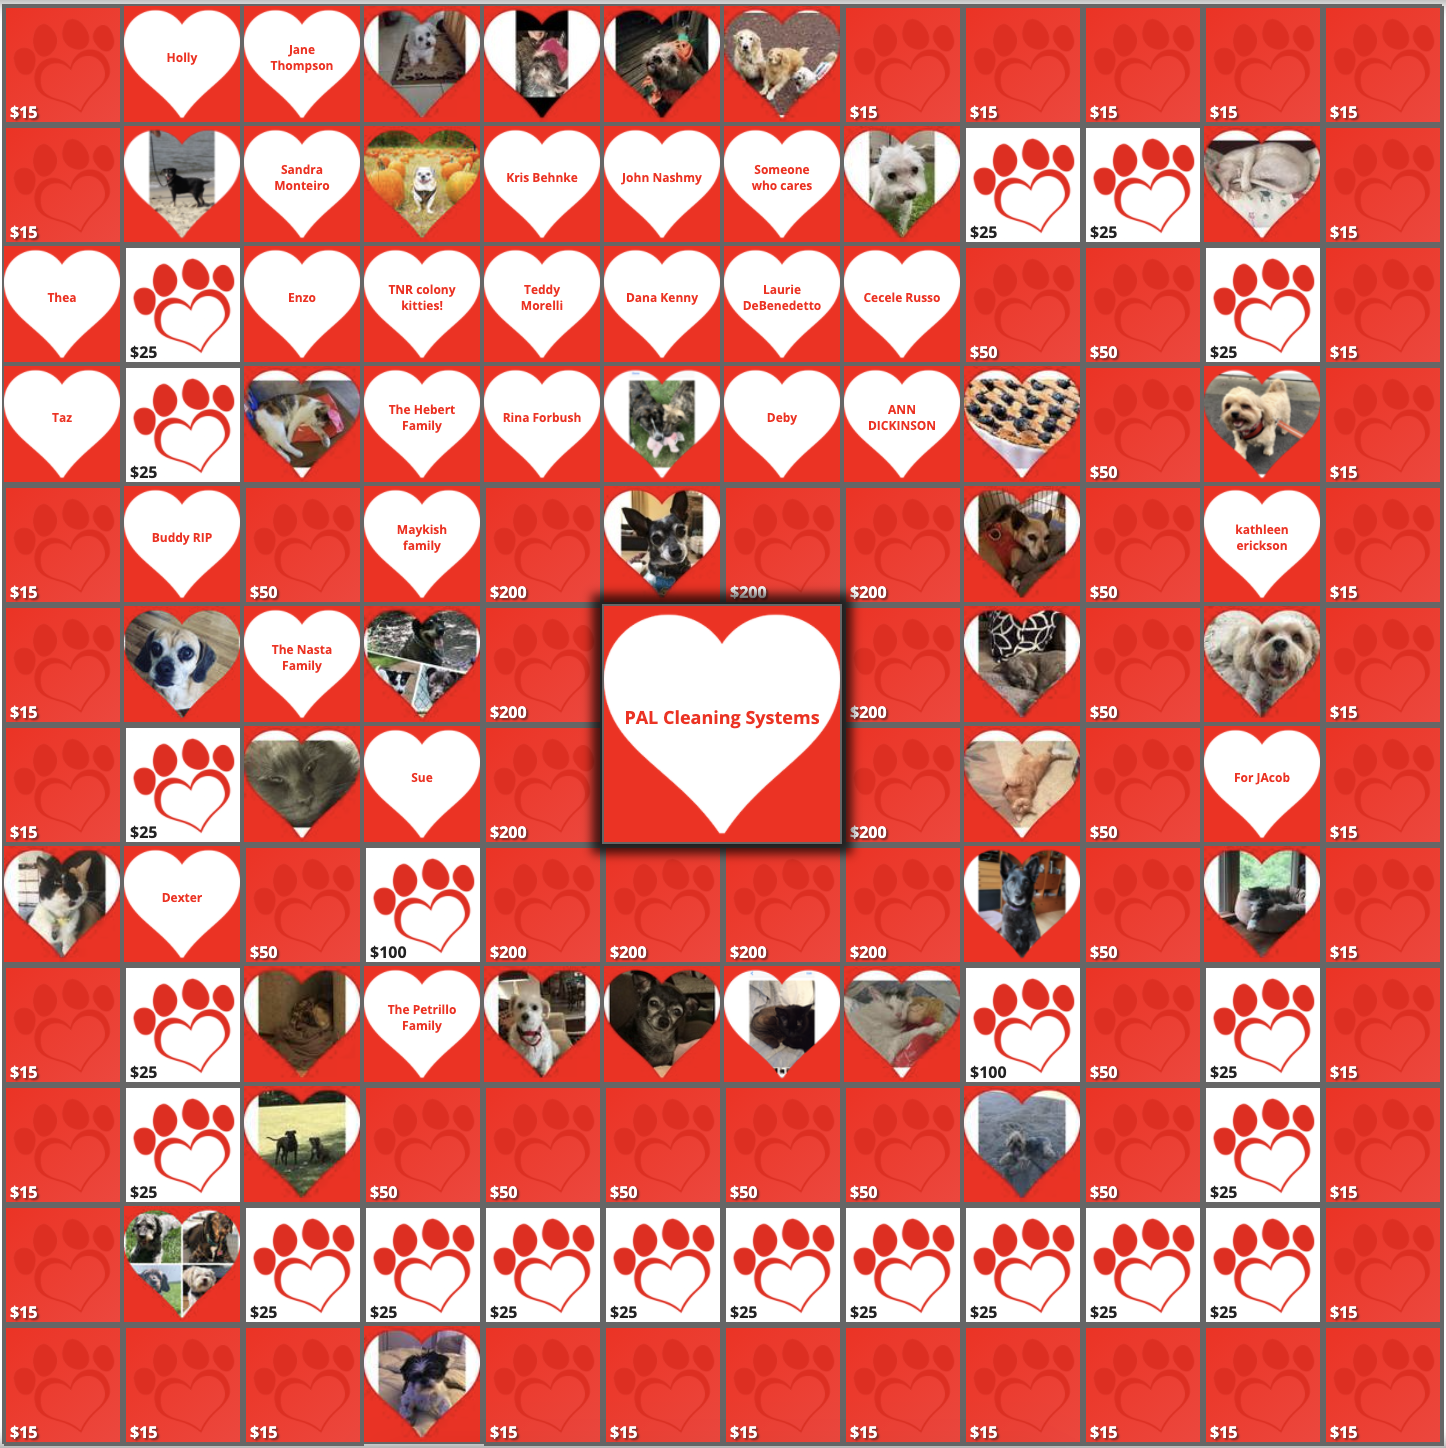 Community Pets Counting on You!